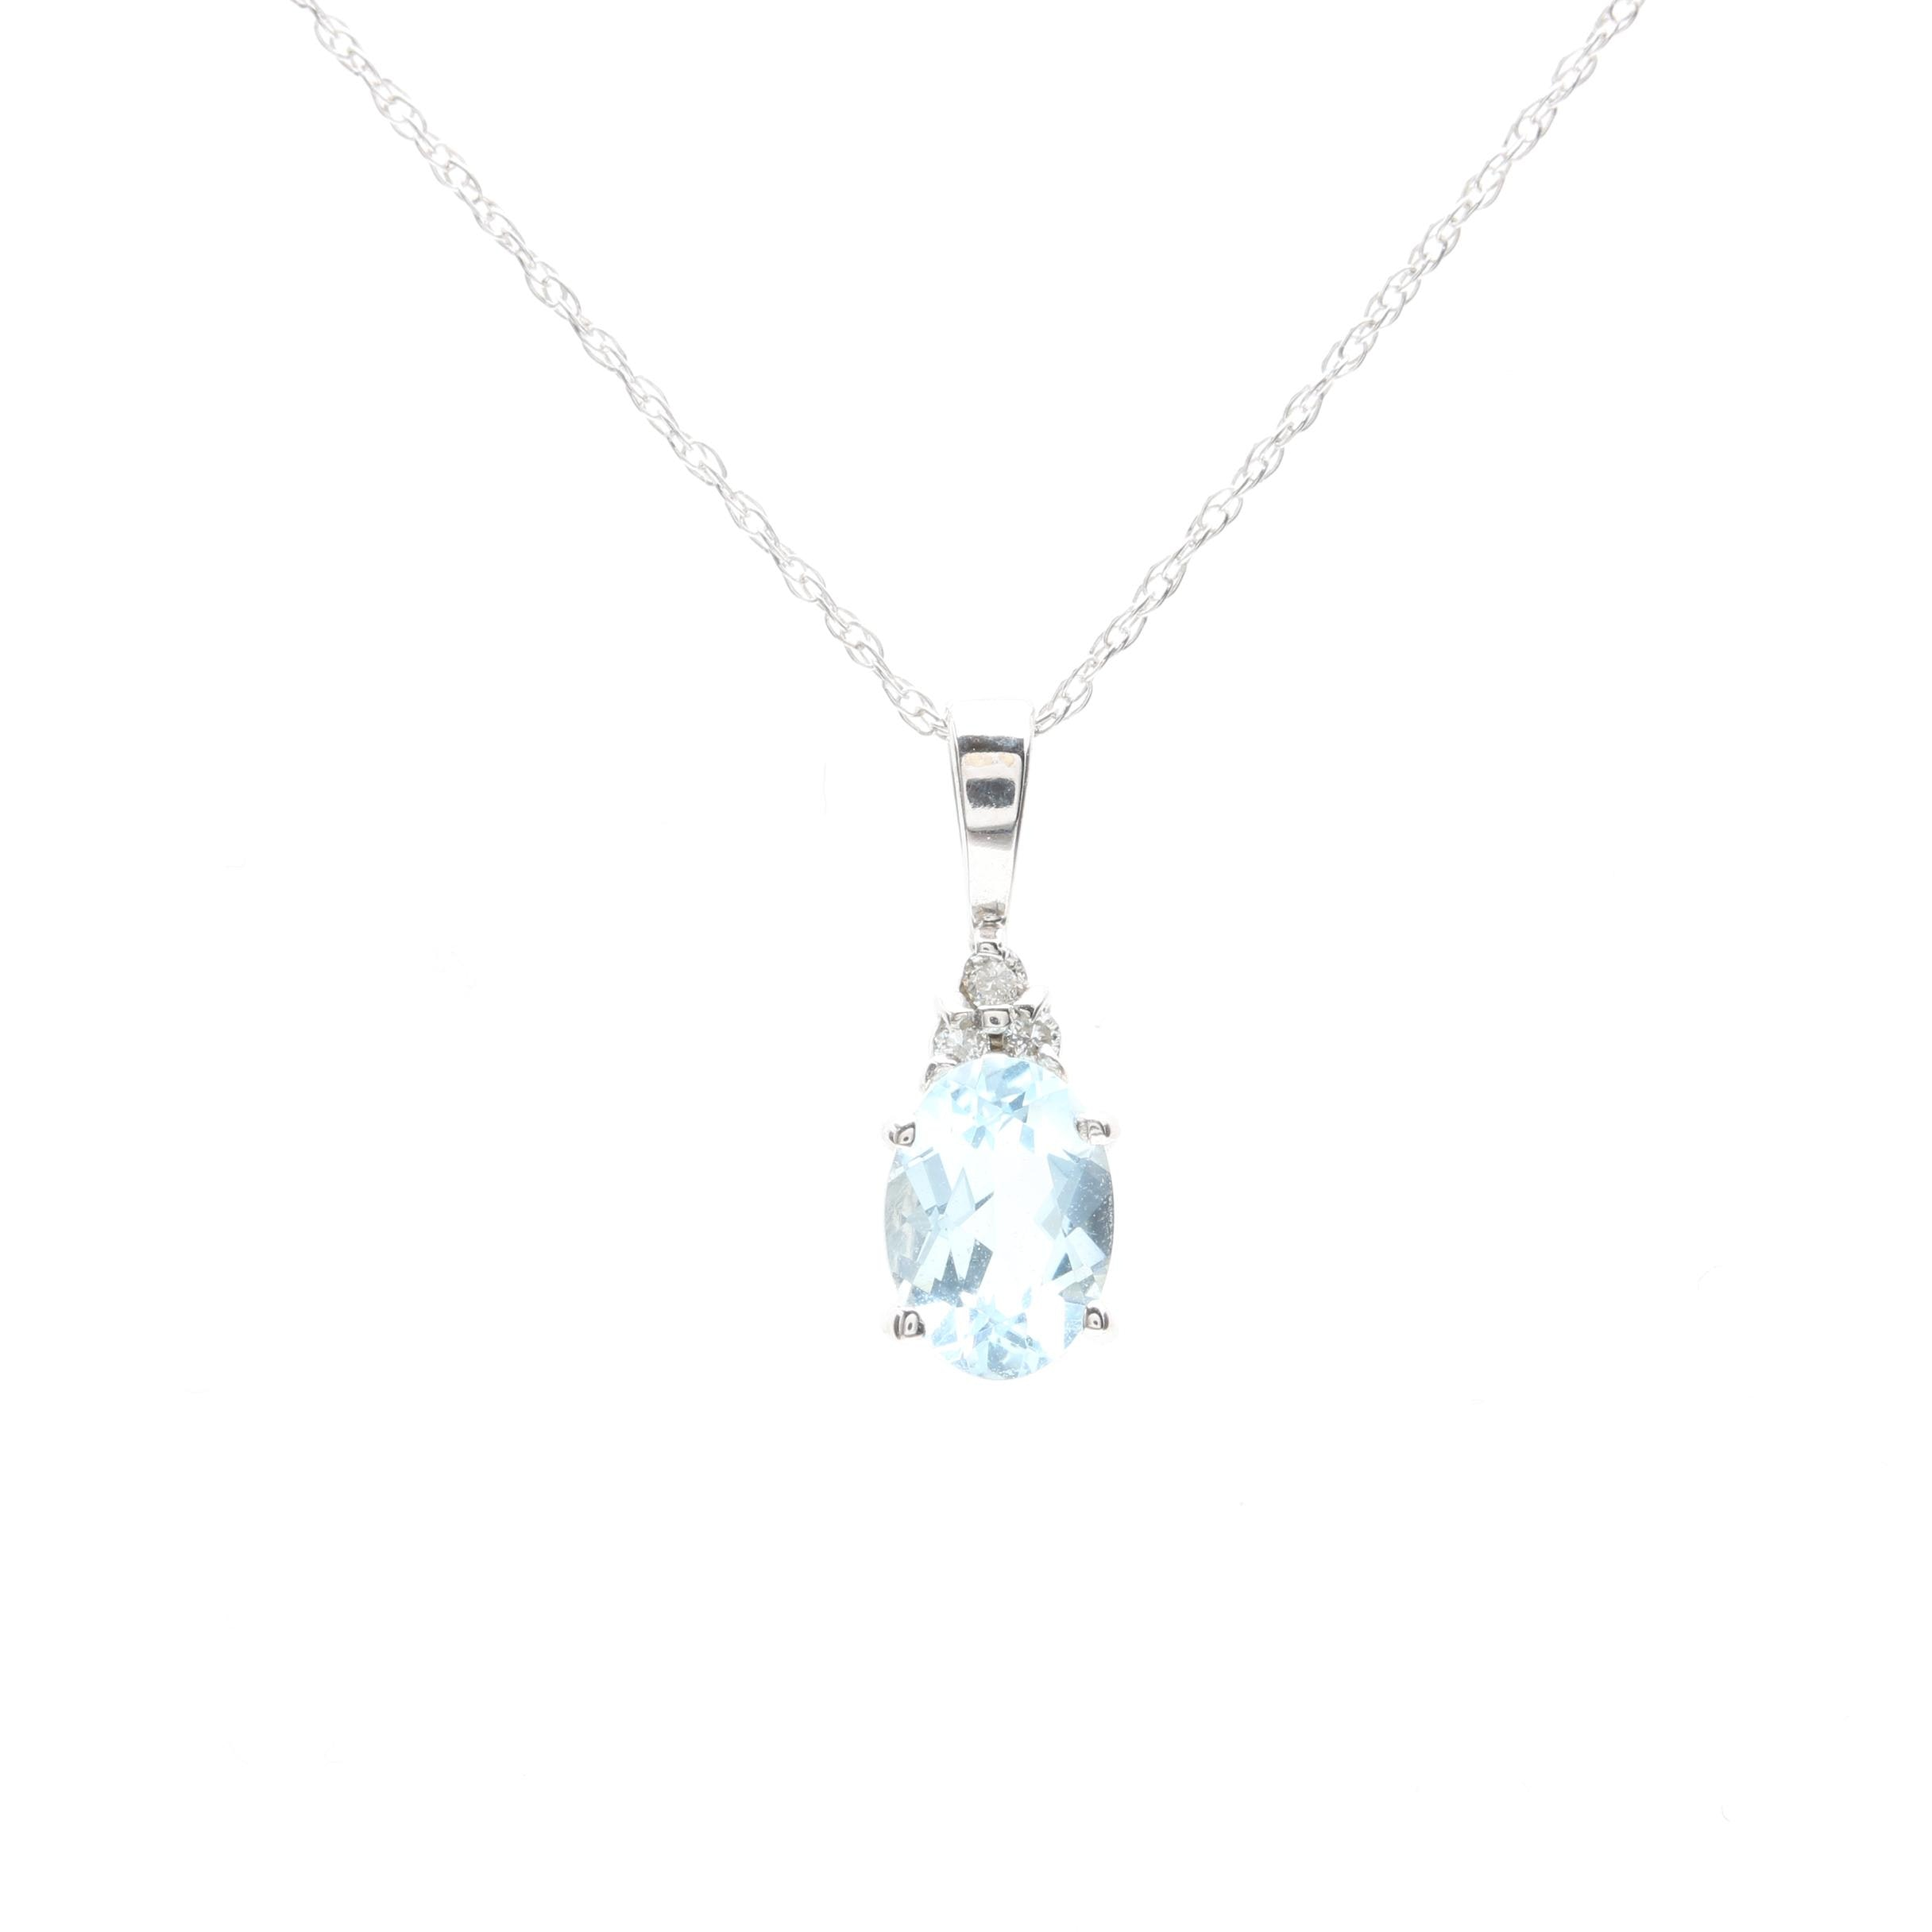 10K White Gold Aquamarine and Diamond Pendant Necklace